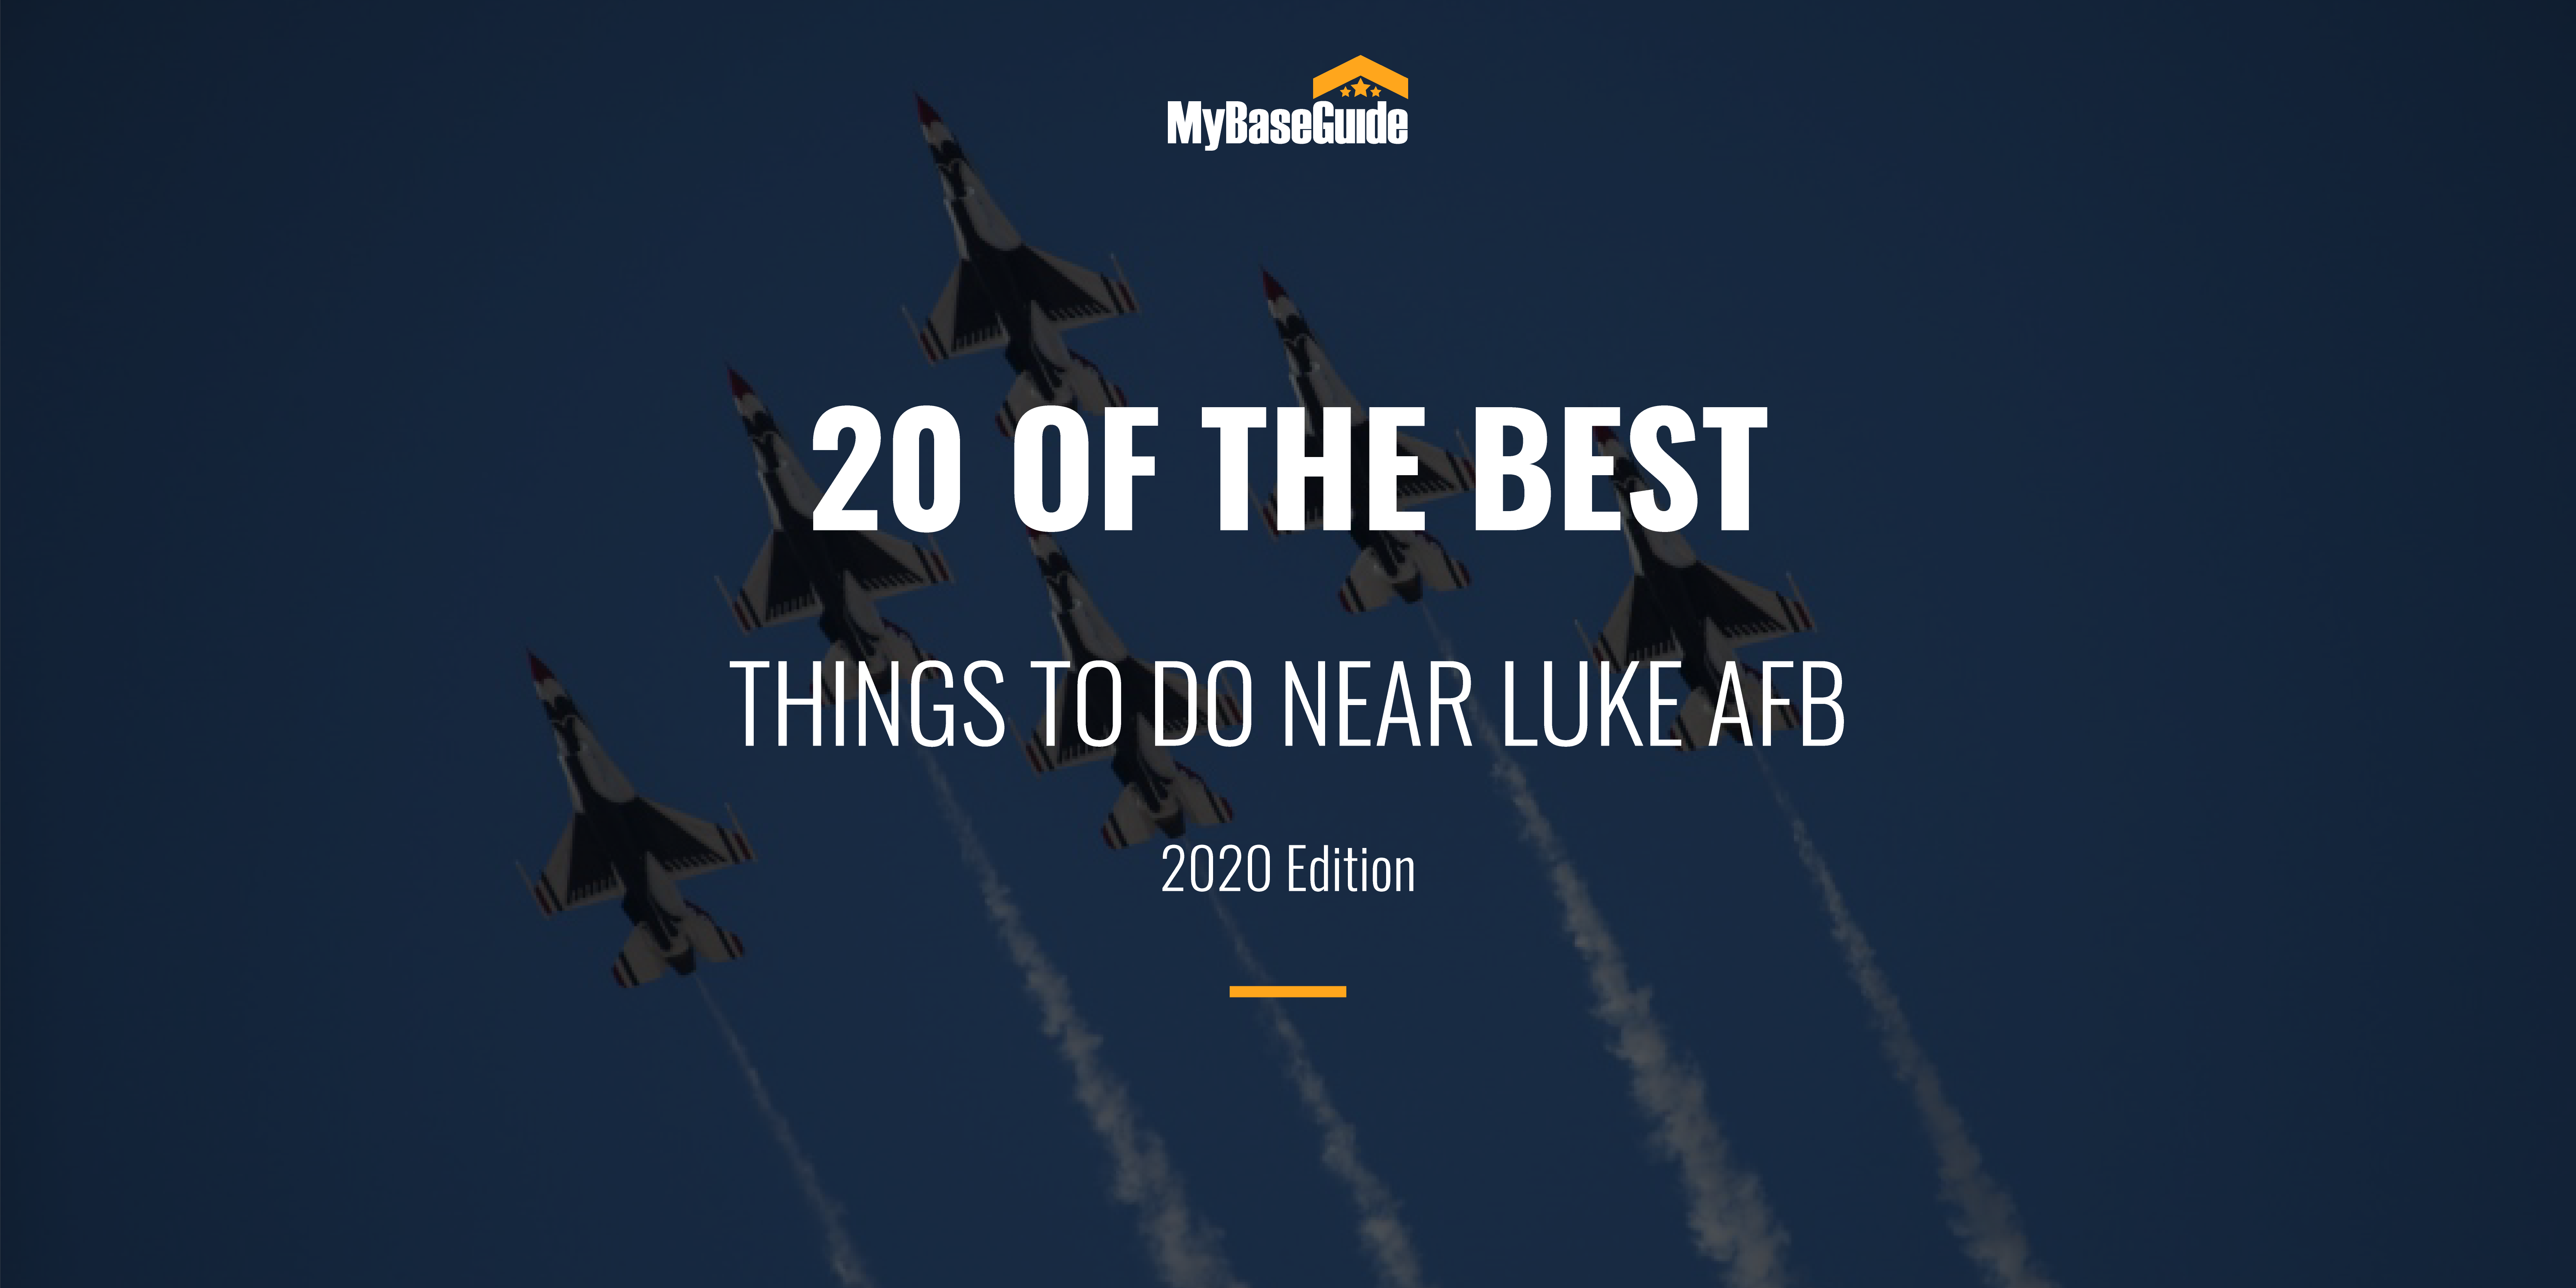 20 Of the Best Things to Do Near Luke AFB